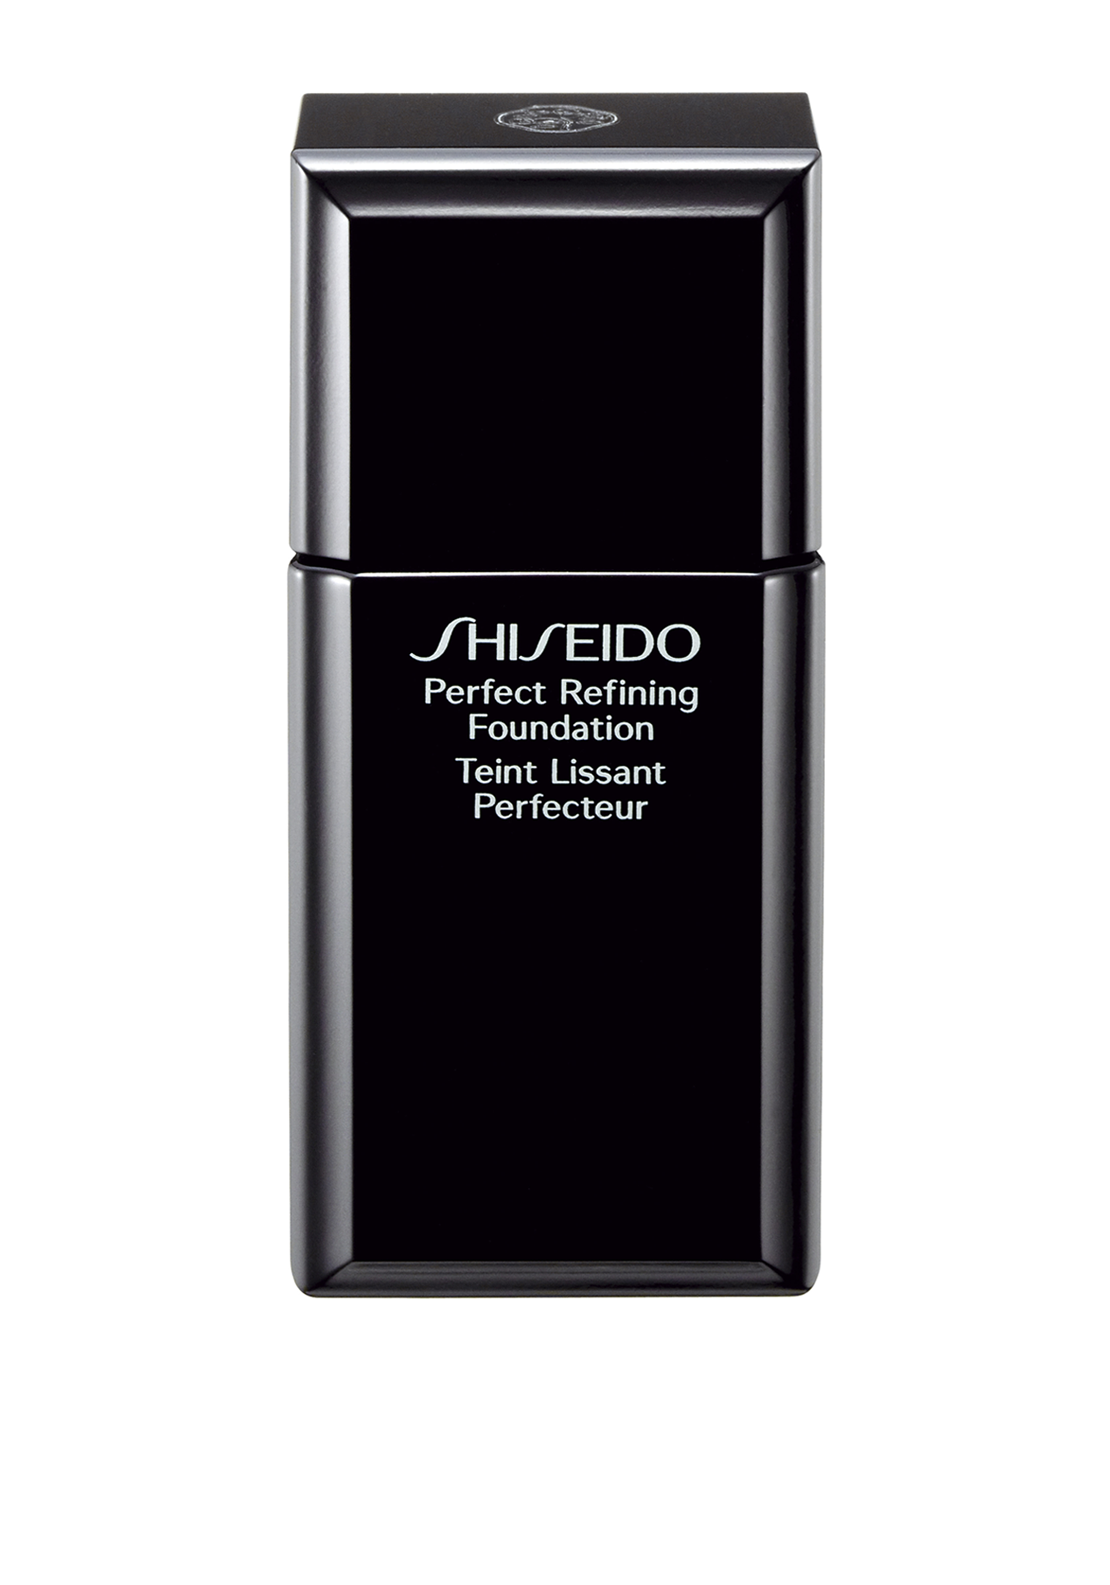 Shiseido Perfect Refining Foundation with SPF15, Natural Deep Ochre 060